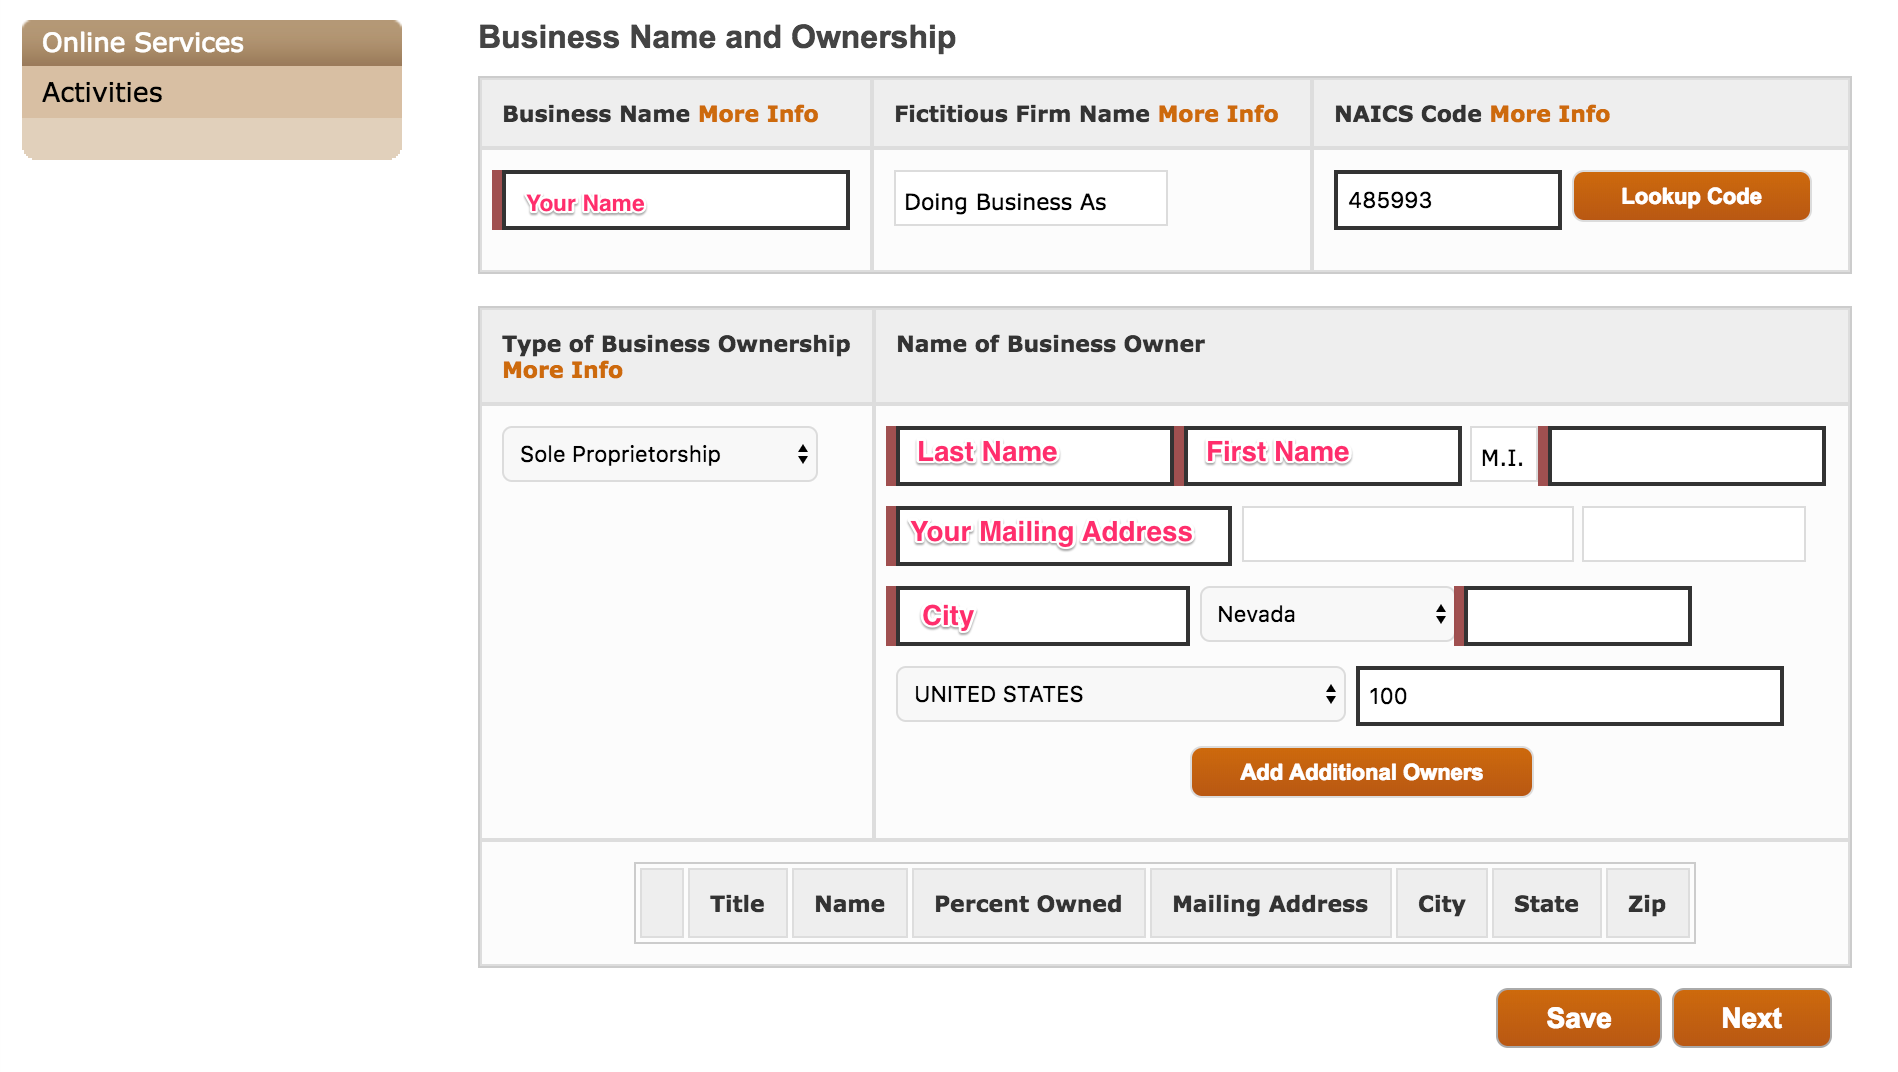 """Business Name & Ownership - 1) Enter your Business Name, which is the name used for your Nevada Business License (Link to Business License instructions)2) Enter Fictitious Name if you entered one for your Nevada Business License3) NAICS Code: Enter code 485993. This code is same for all TNC drivers4) Type of Business Ownership - as shown on your Nevada Business License. Most drivers set up Sole Proprietorship.5) Name of Business Owner - your name and address6) Click """"Next"""""""